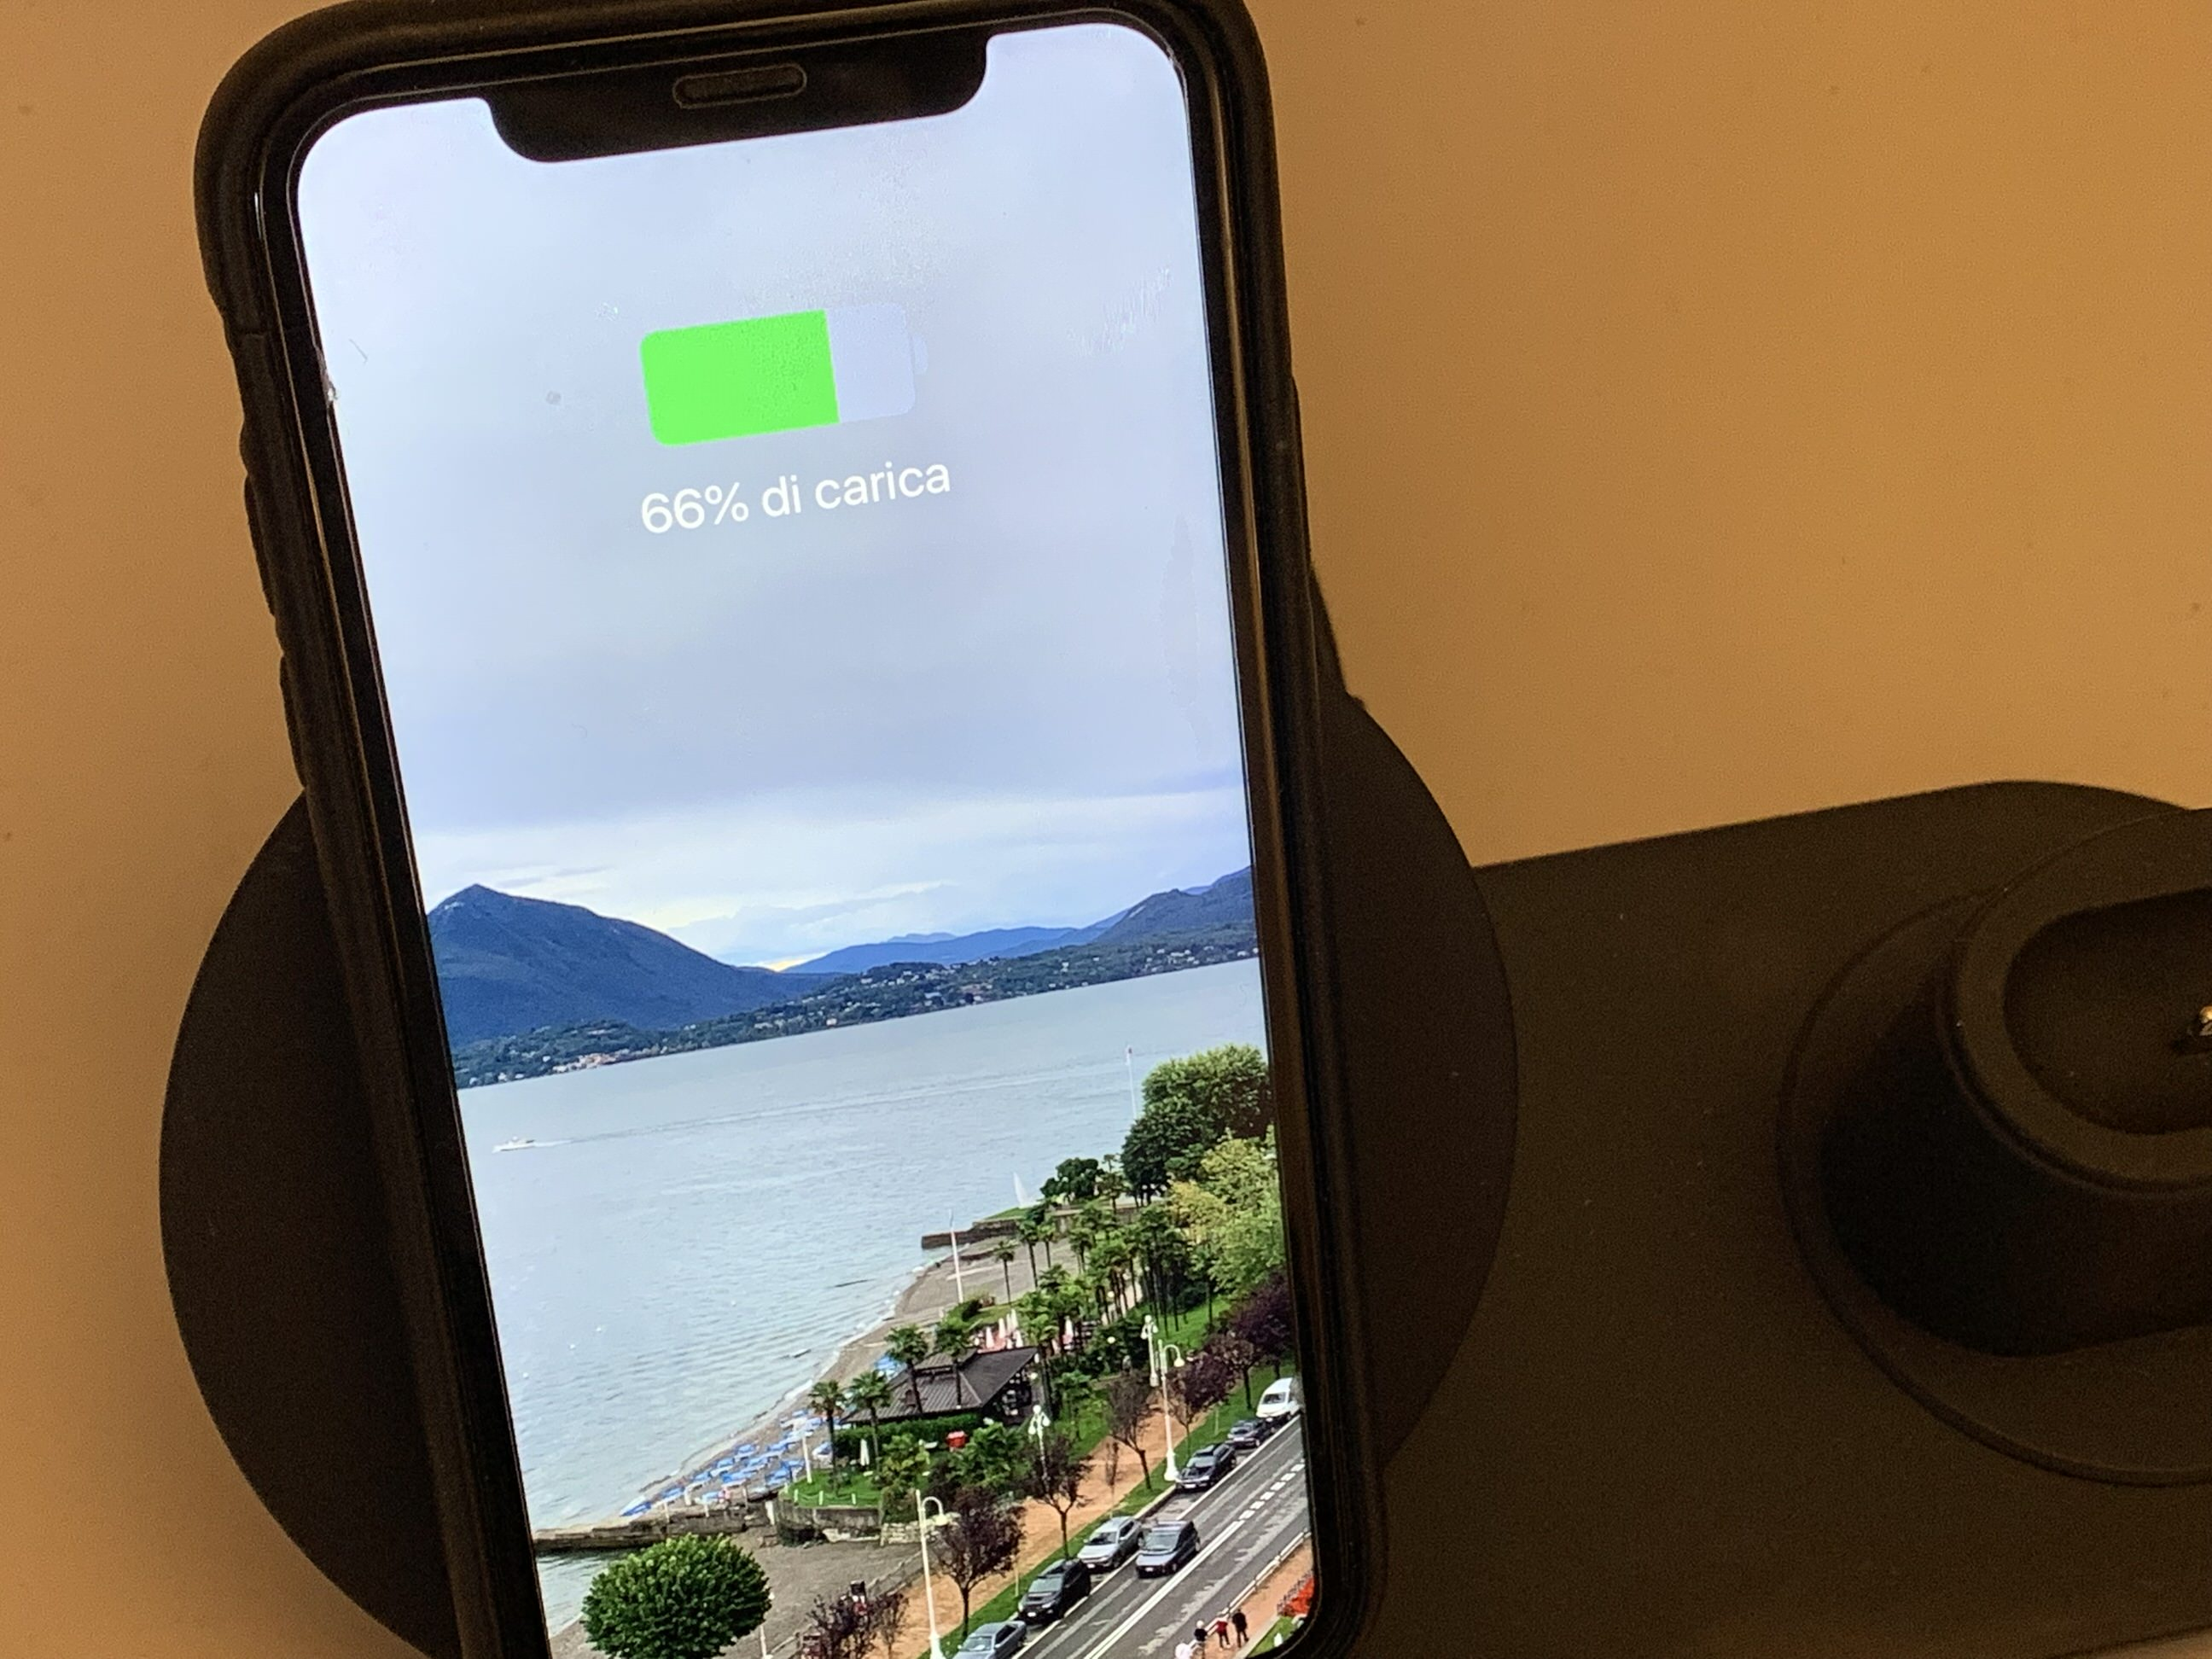 Recensione Fast Wireless Charger: ricaricate con un solo dispositivo iPhone, Apple Watch ed AirPods